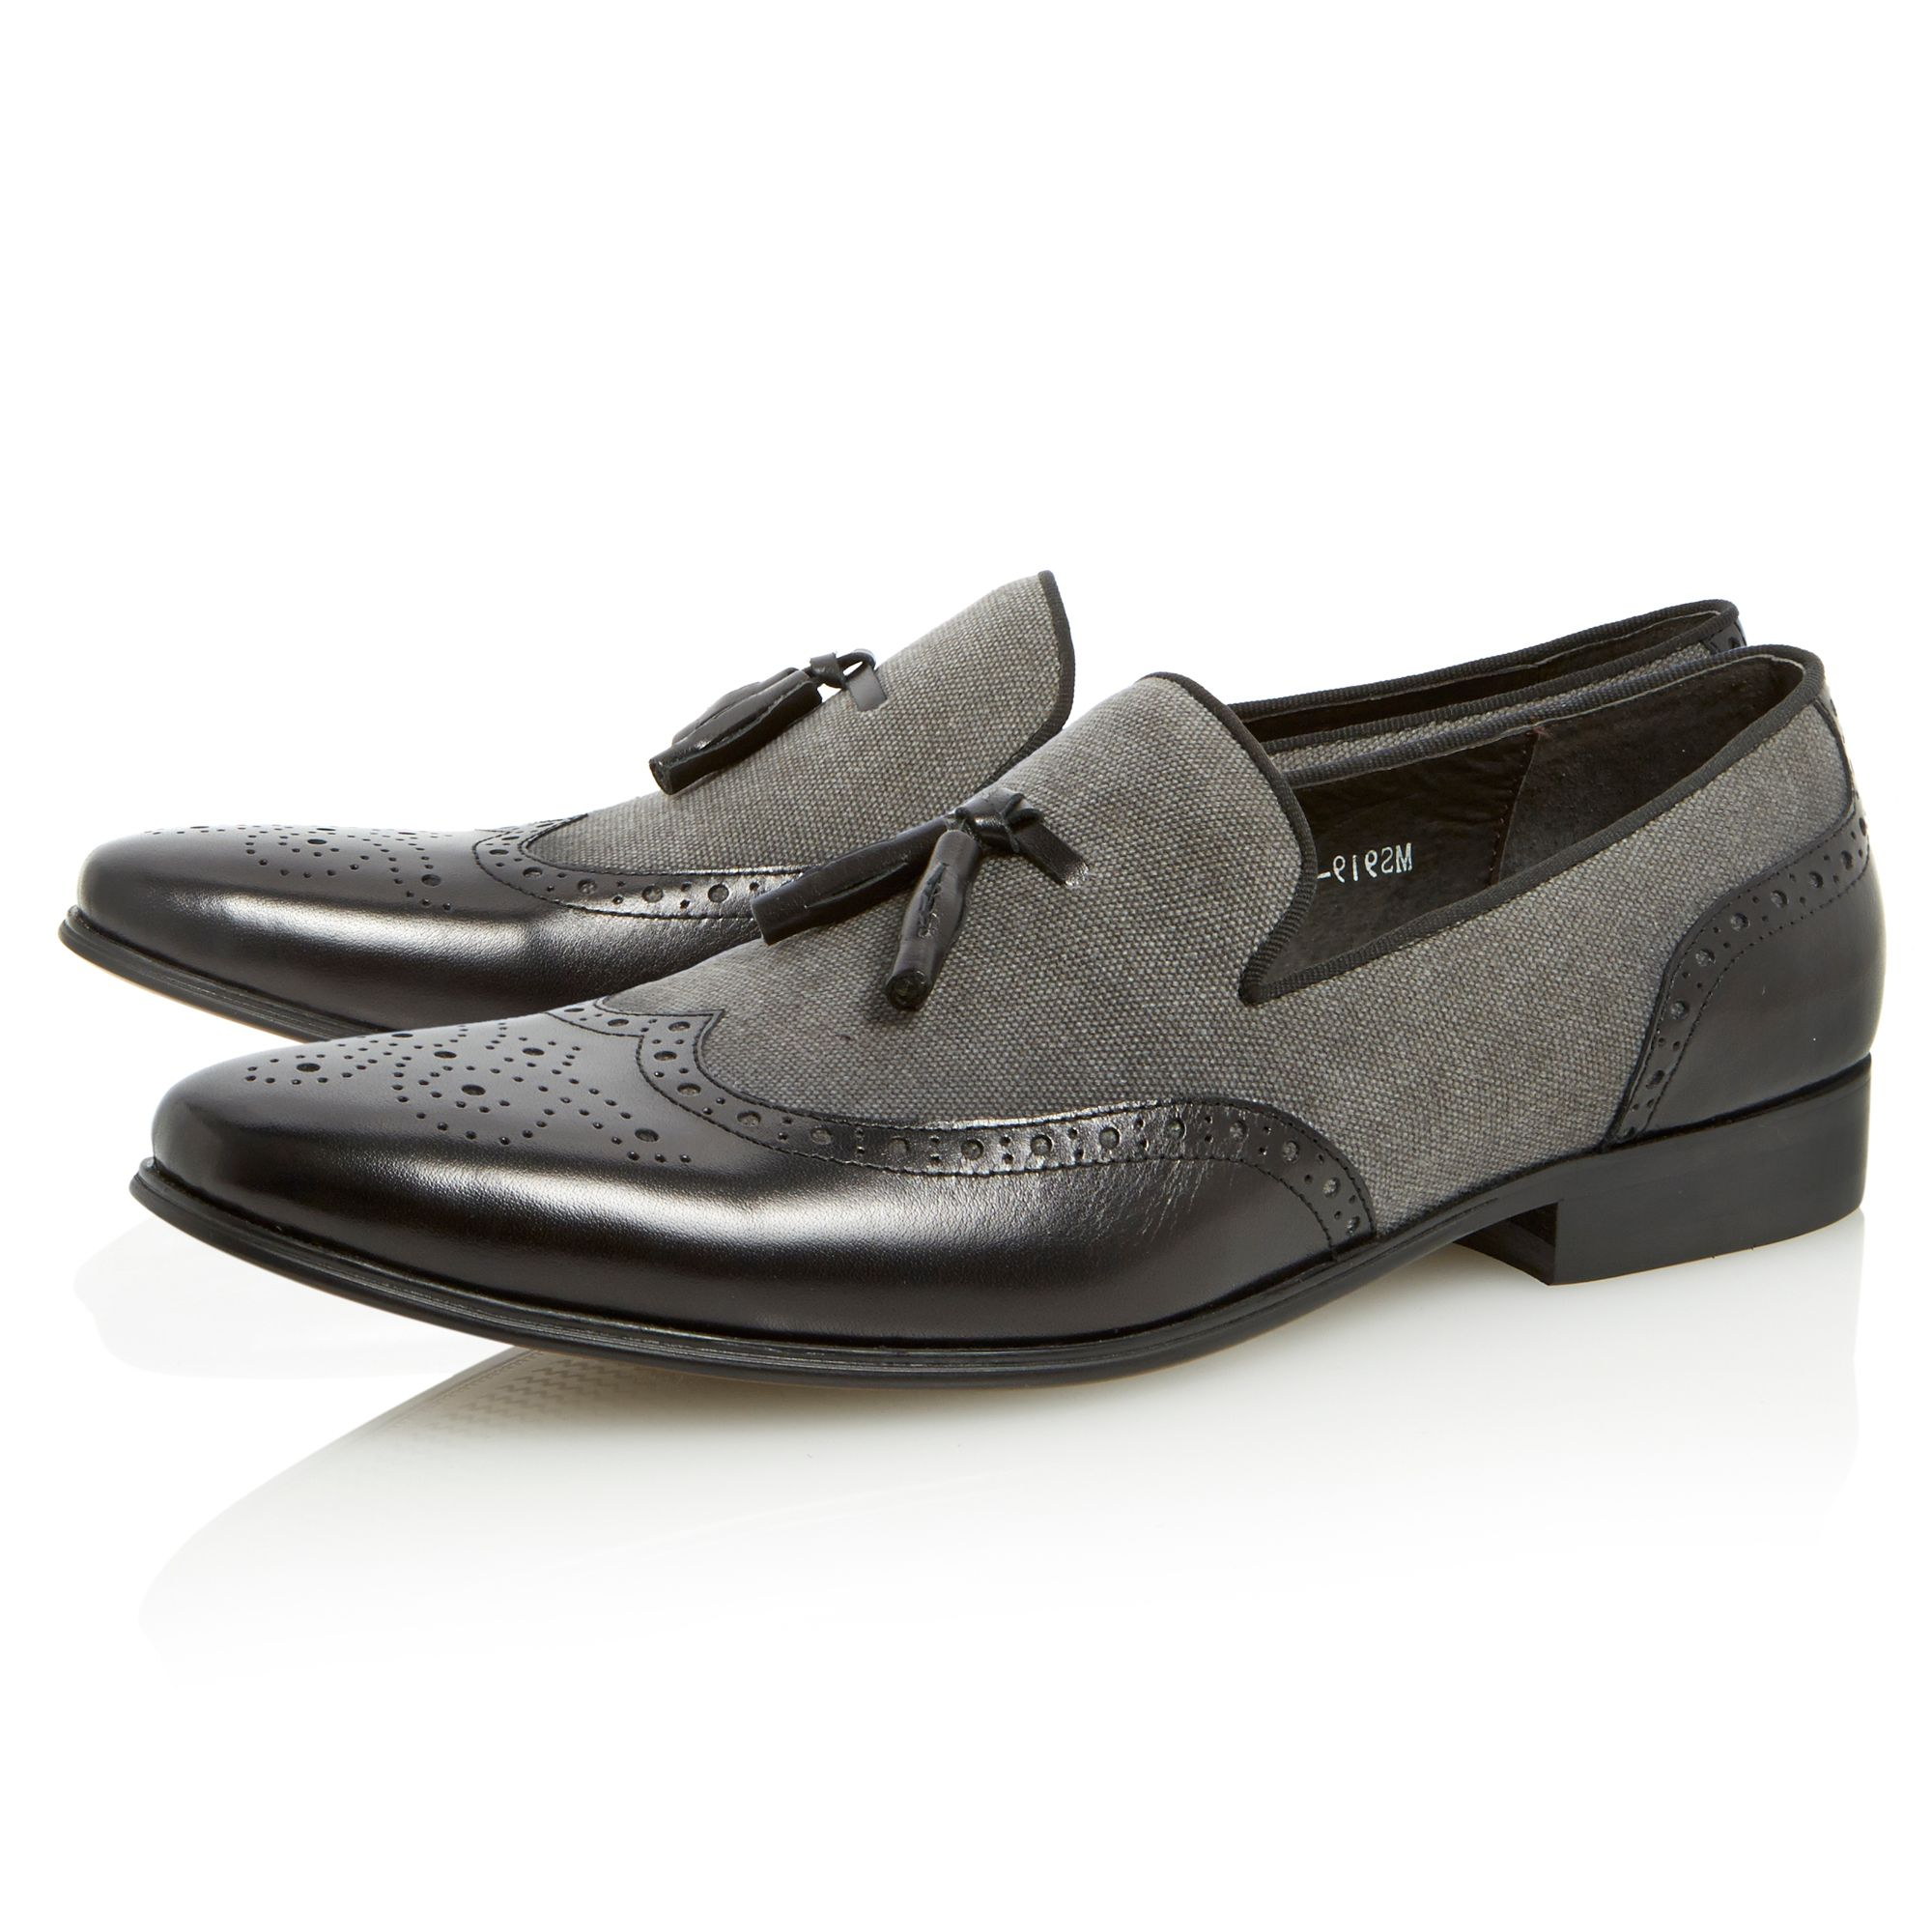 Applaud leather canvas tassel loafers